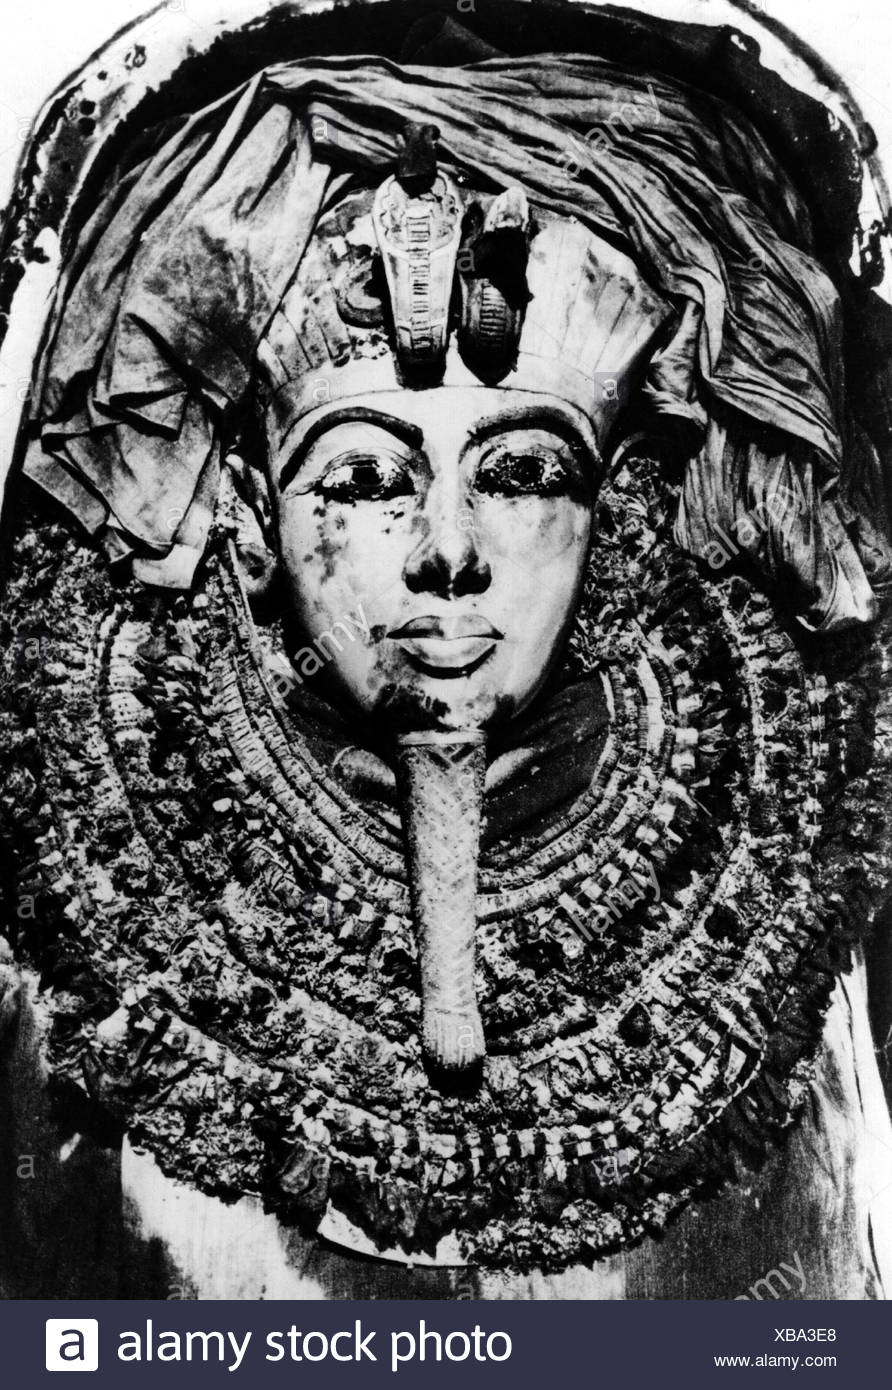 Tutankhamun, King of Egypt, 1333 - 1323 BC, 18th Dynasty, grave in the Valley of the Kings, mummy with death mask in the sarcophagus (detail), Additional-Rights-Clearances-NA - Stock Image